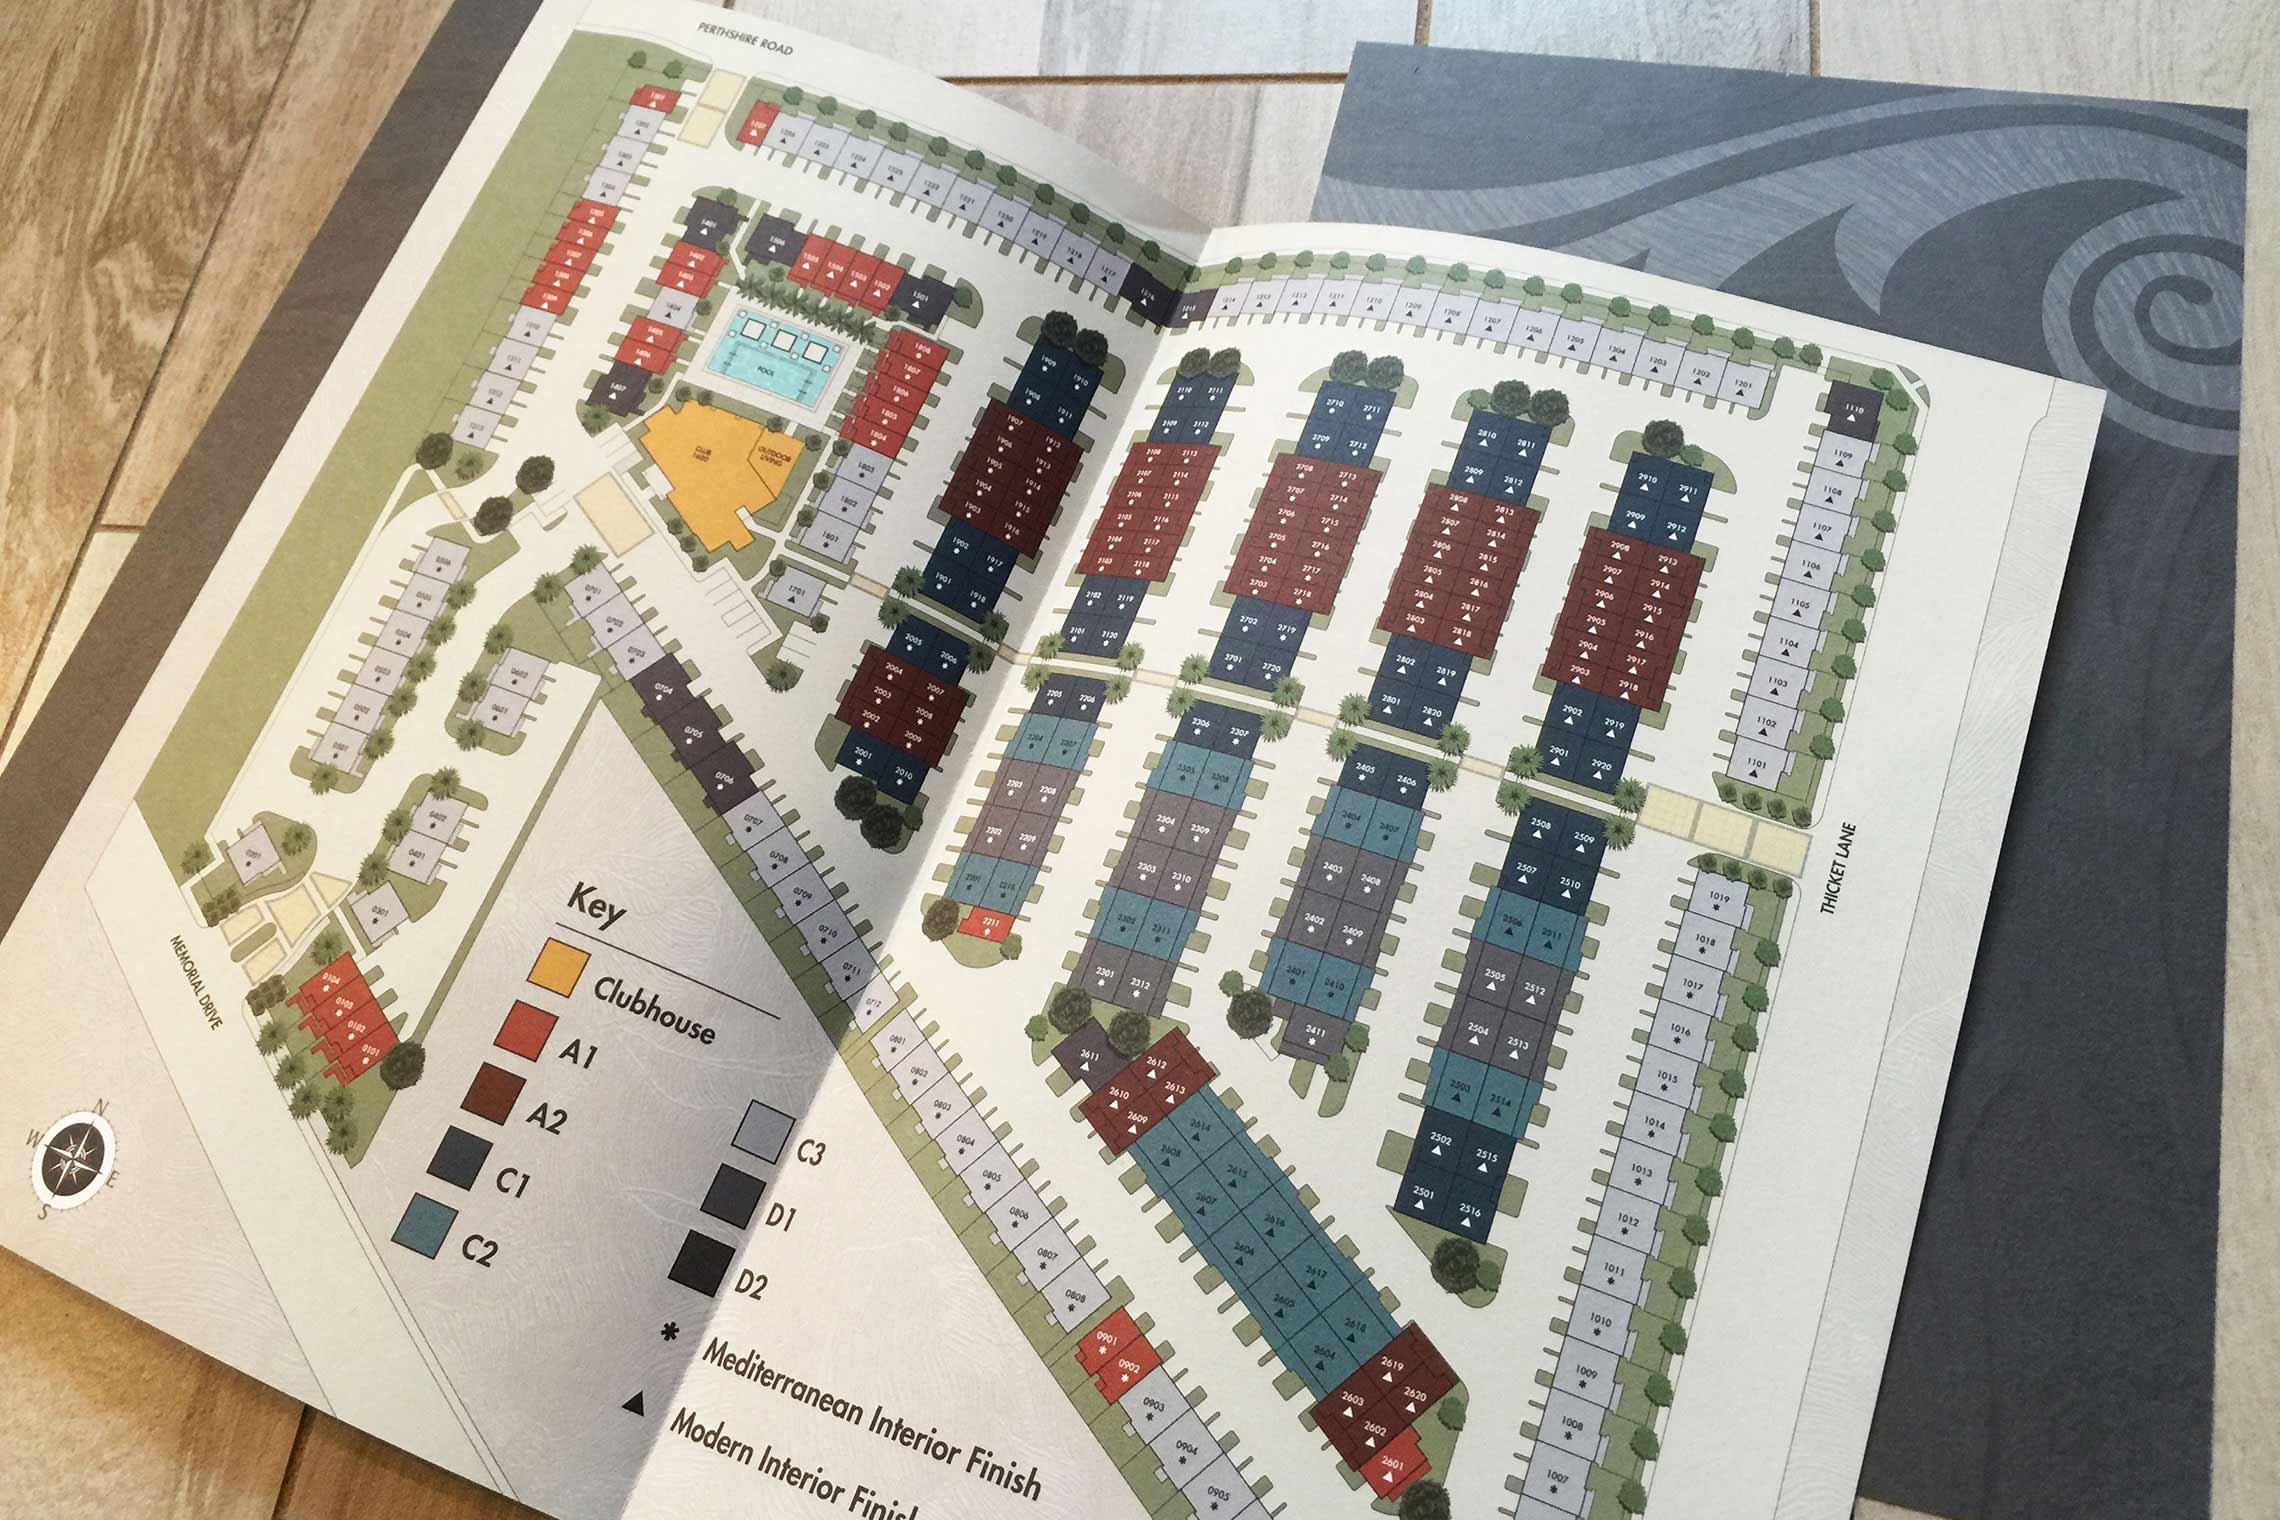 Domain Memorial Luxury Rental Townhomes - Site Plan in Fold-Out